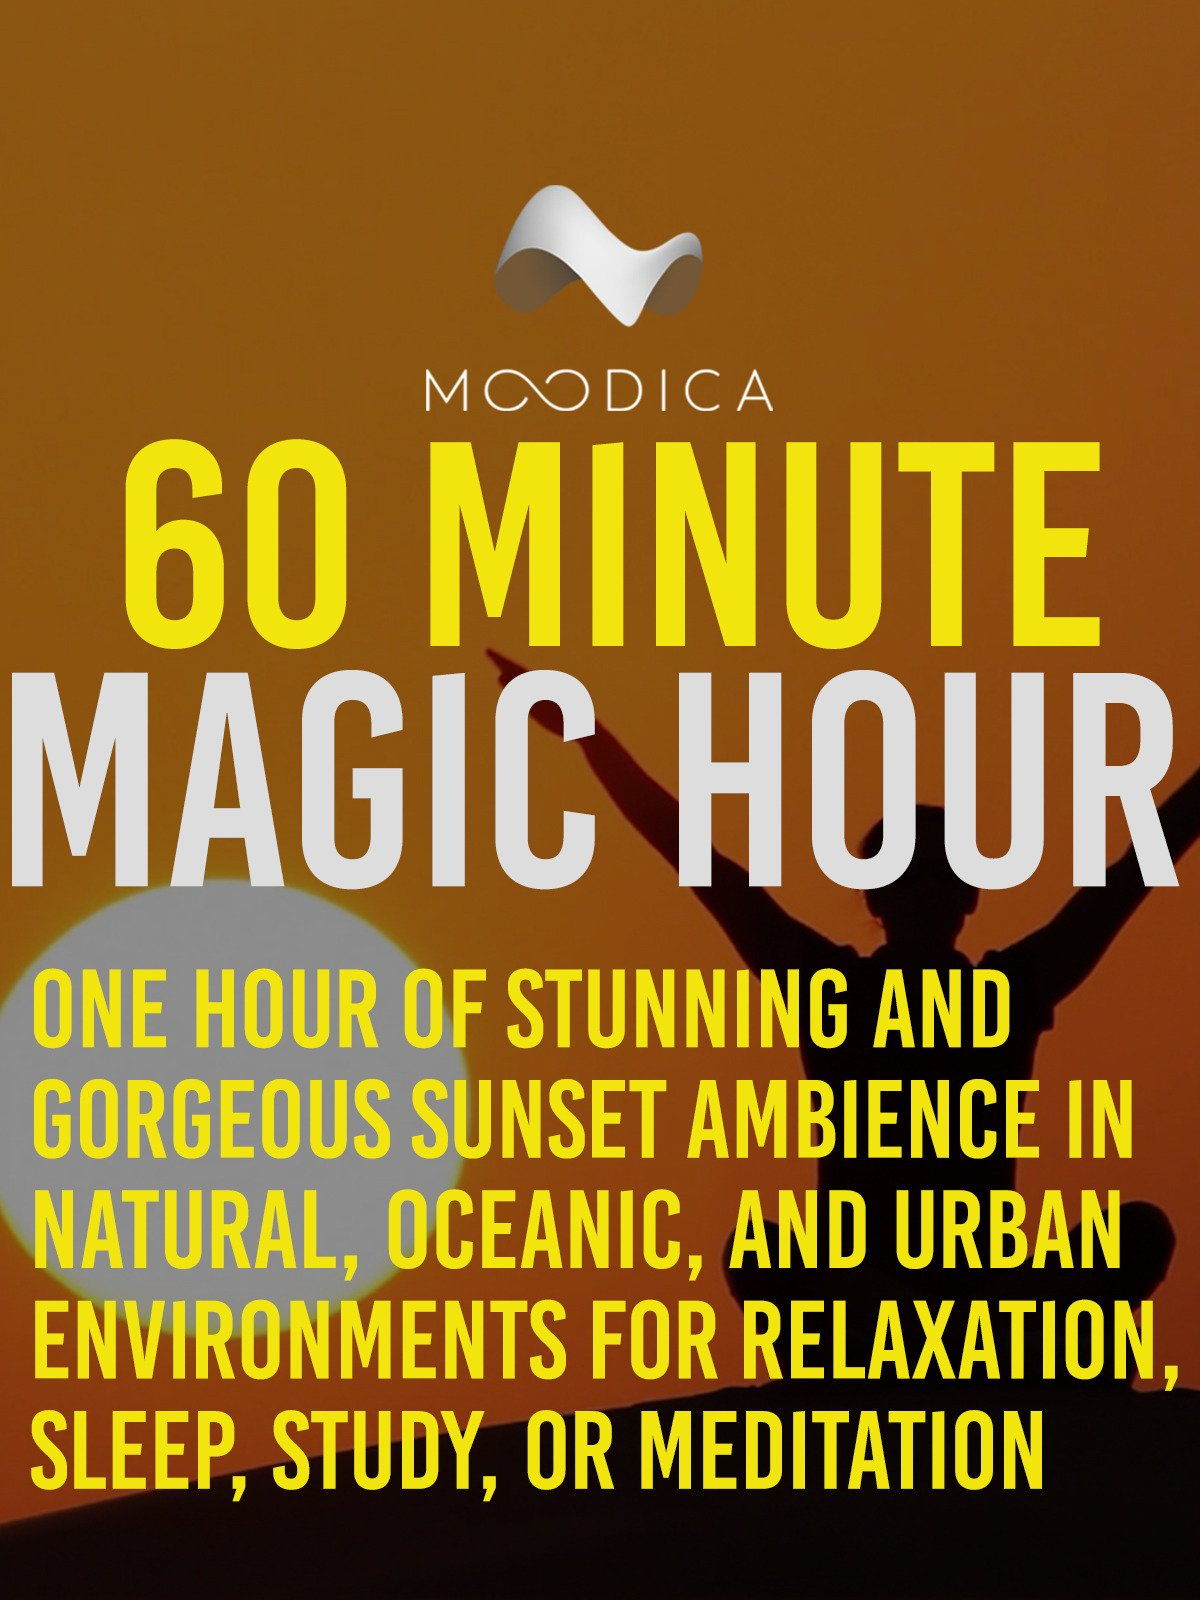 60 Minute Magic Hour: One Hour of Stunning and Gorgeous Sunset Ambience in Natural, Oceanic, and Urban Environments for Relaxation, Sleep, Study, or Meditation